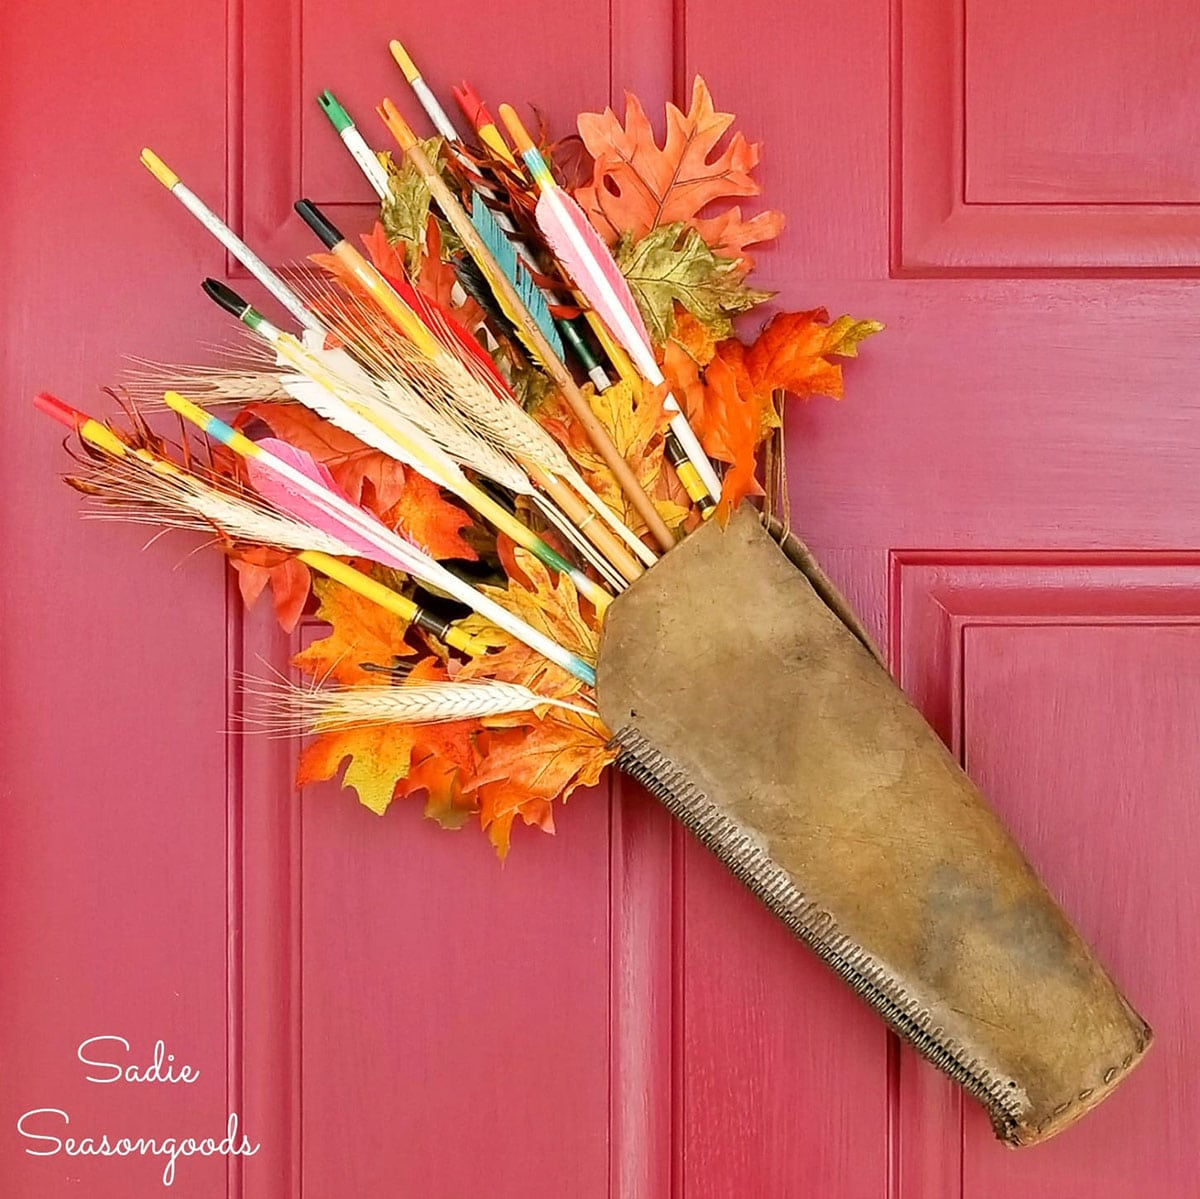 quiver of arrows hung on red door as fall wreath